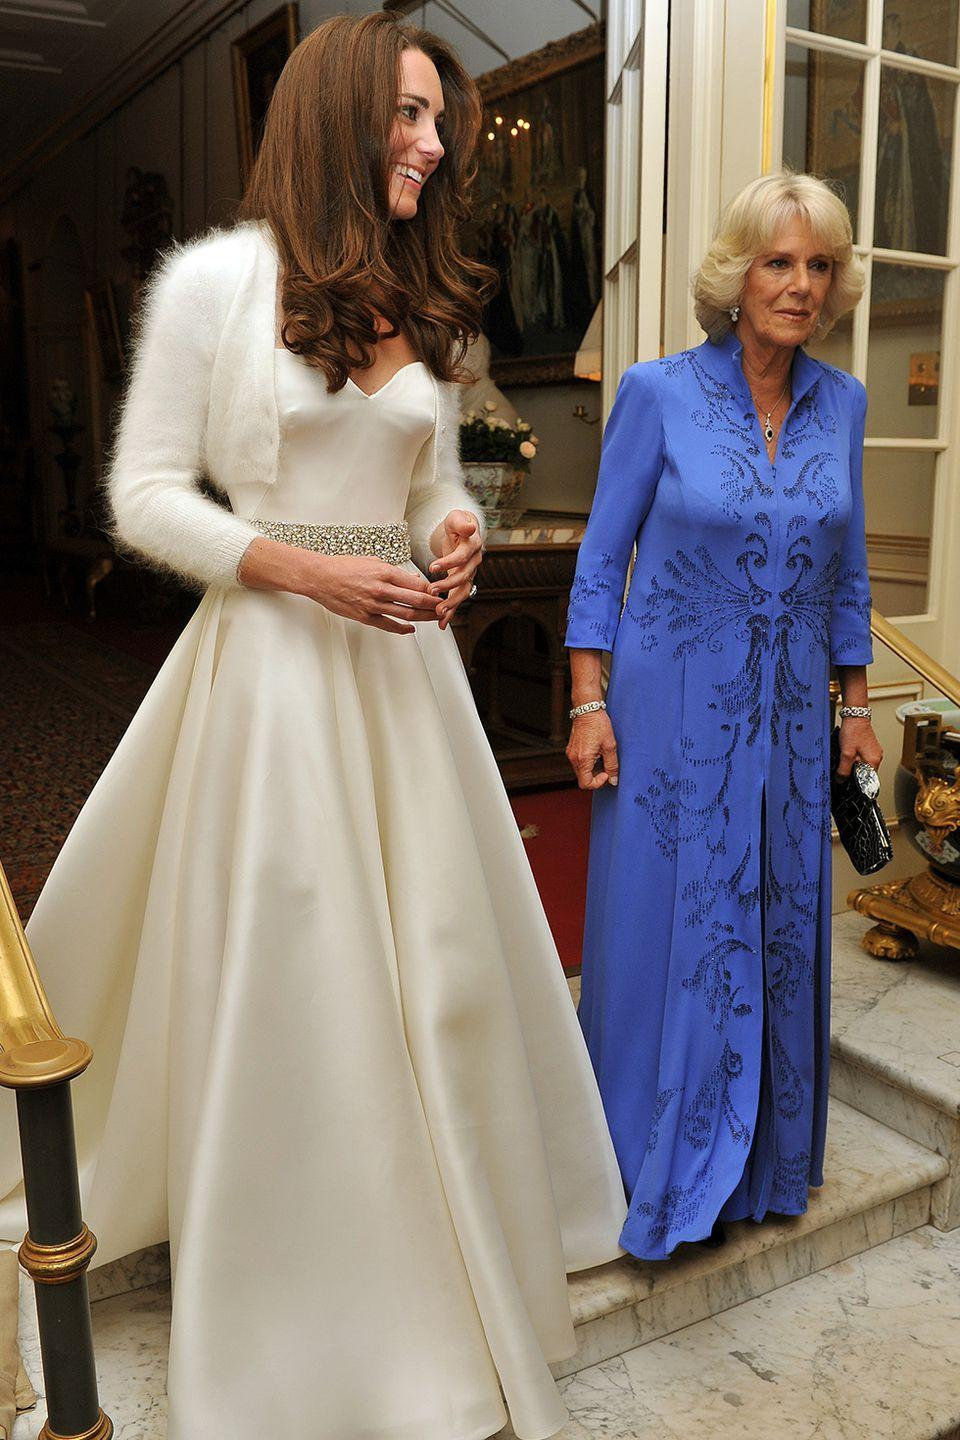 <p>Because if you're royalty, you can have as many wedding dresses as you want. The new Duchess of Cambridge changed into a simpler white satin dress for her wedding reception, complete with an elegant beaded belt and angora cardigan. </p>